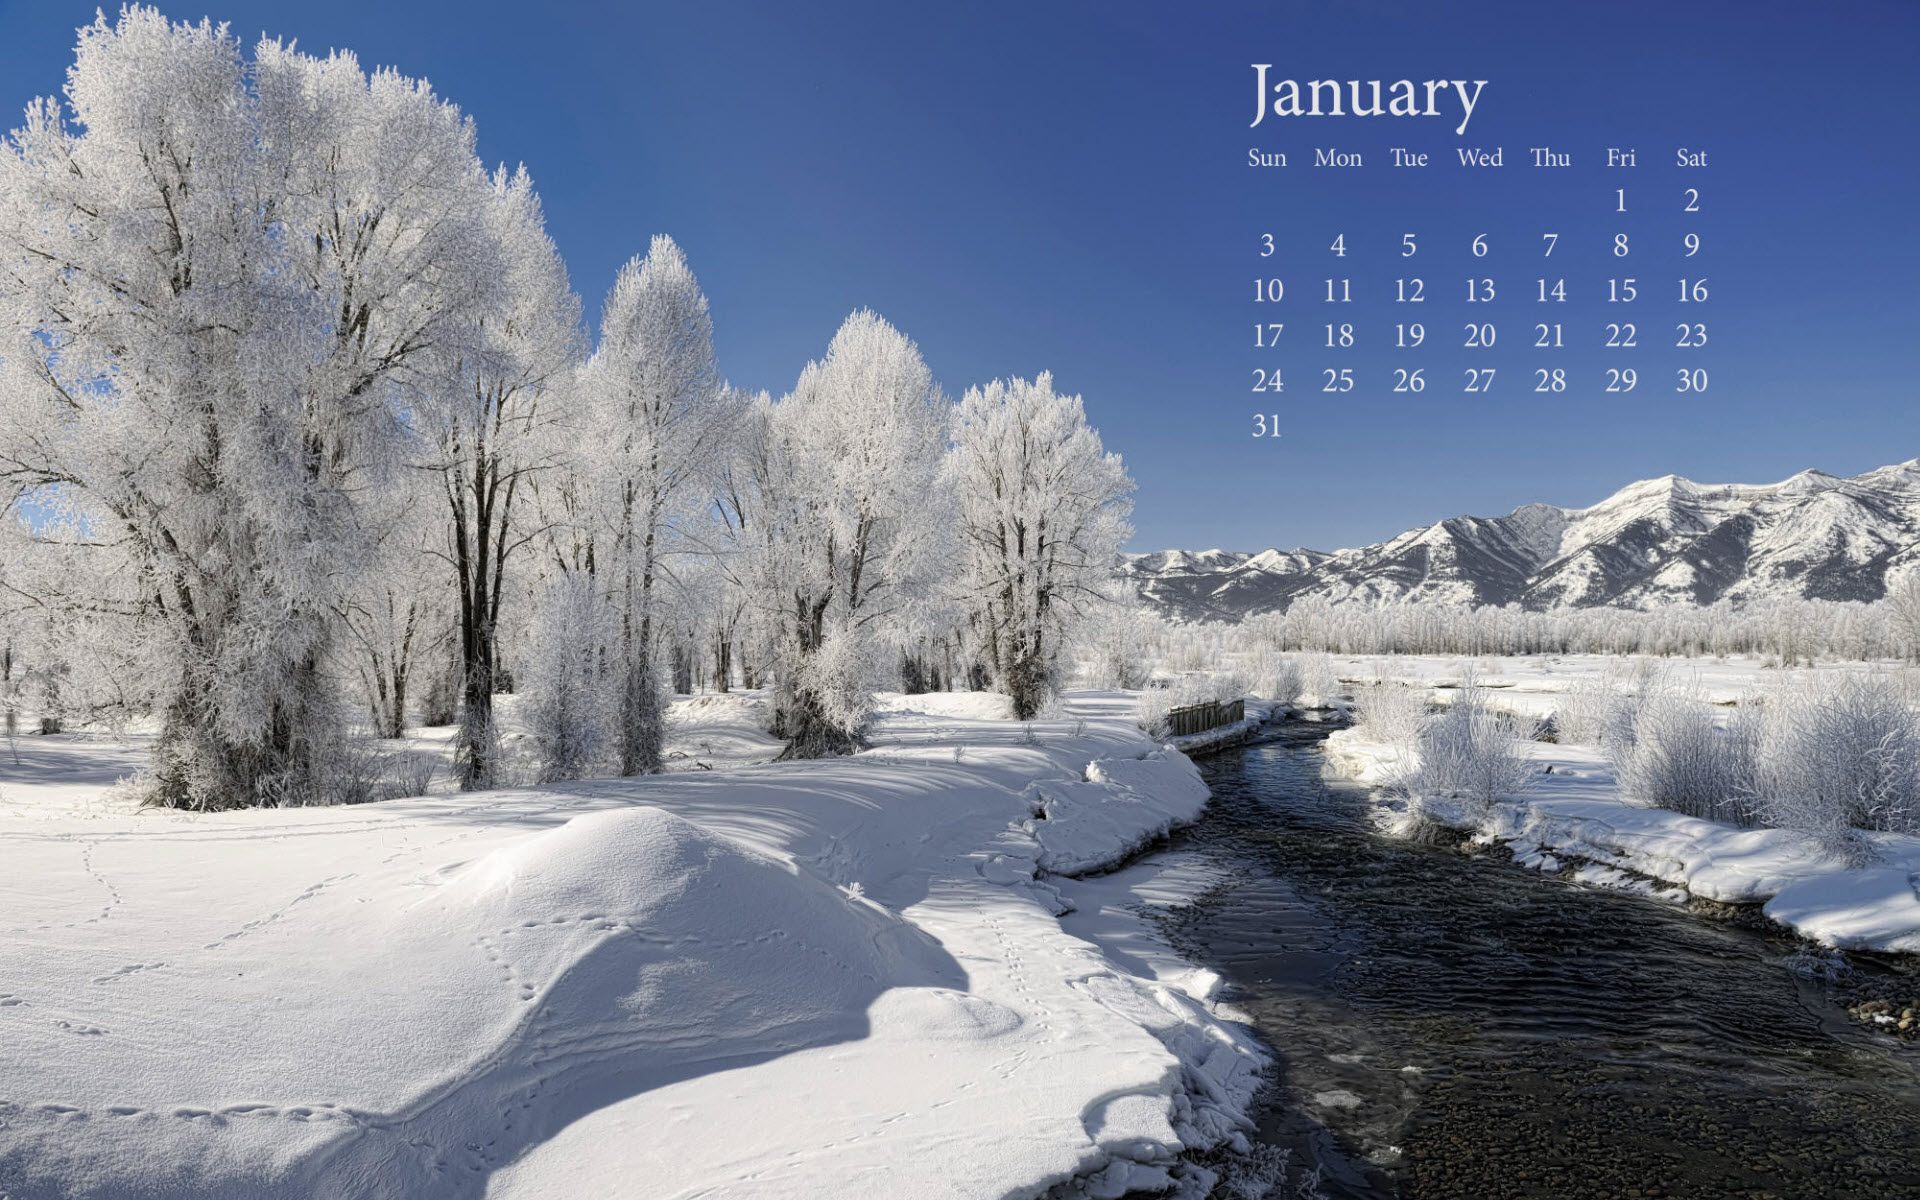 January Pictures Wallpaper